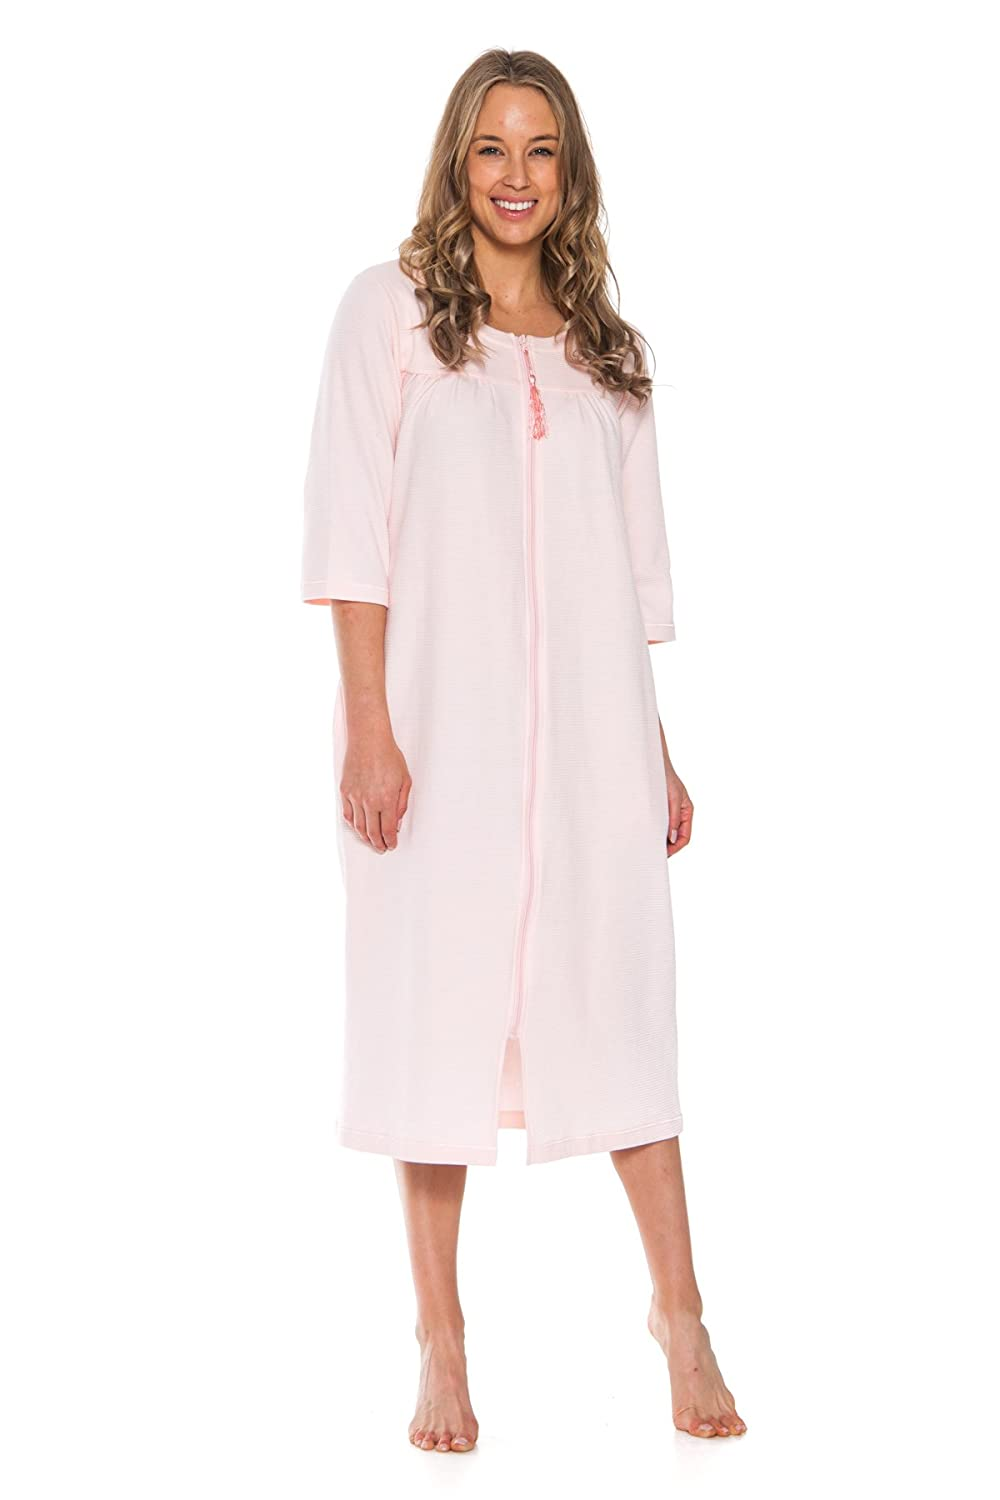 Patricia Women's Soft Waffle Knit Knee Length Zip up Nightgown Small)